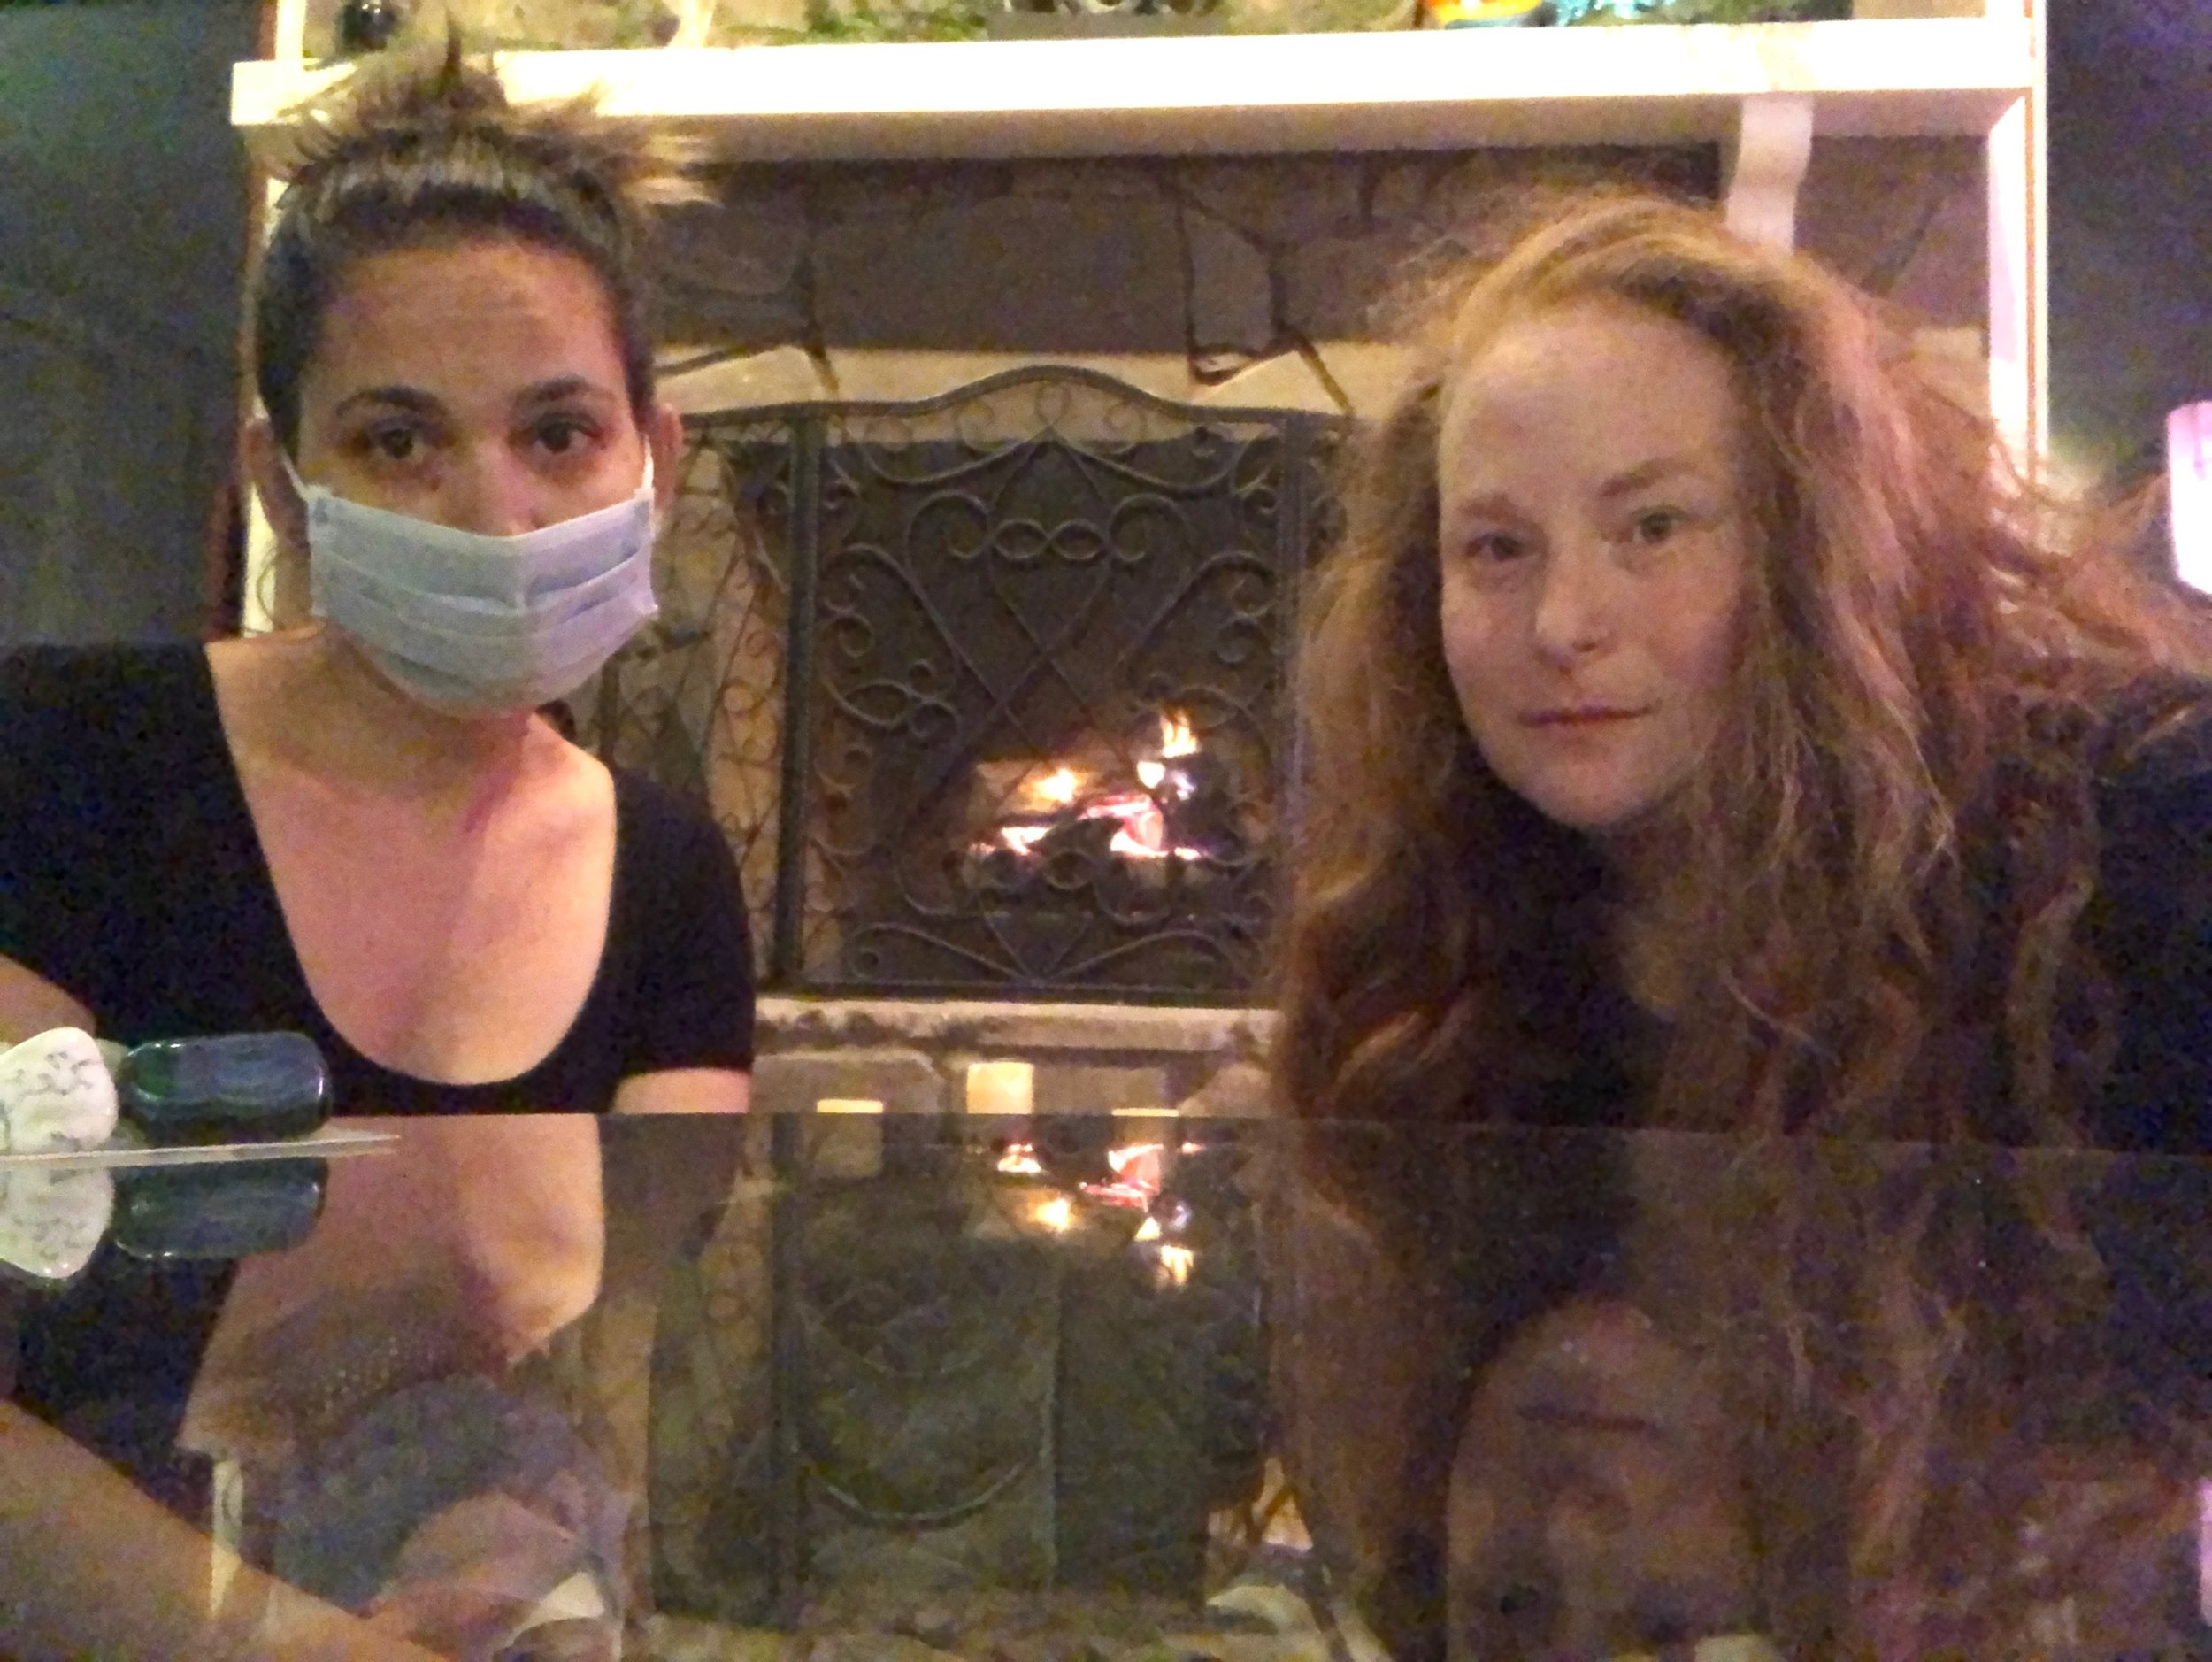 two florida girls enjoying the fireplace